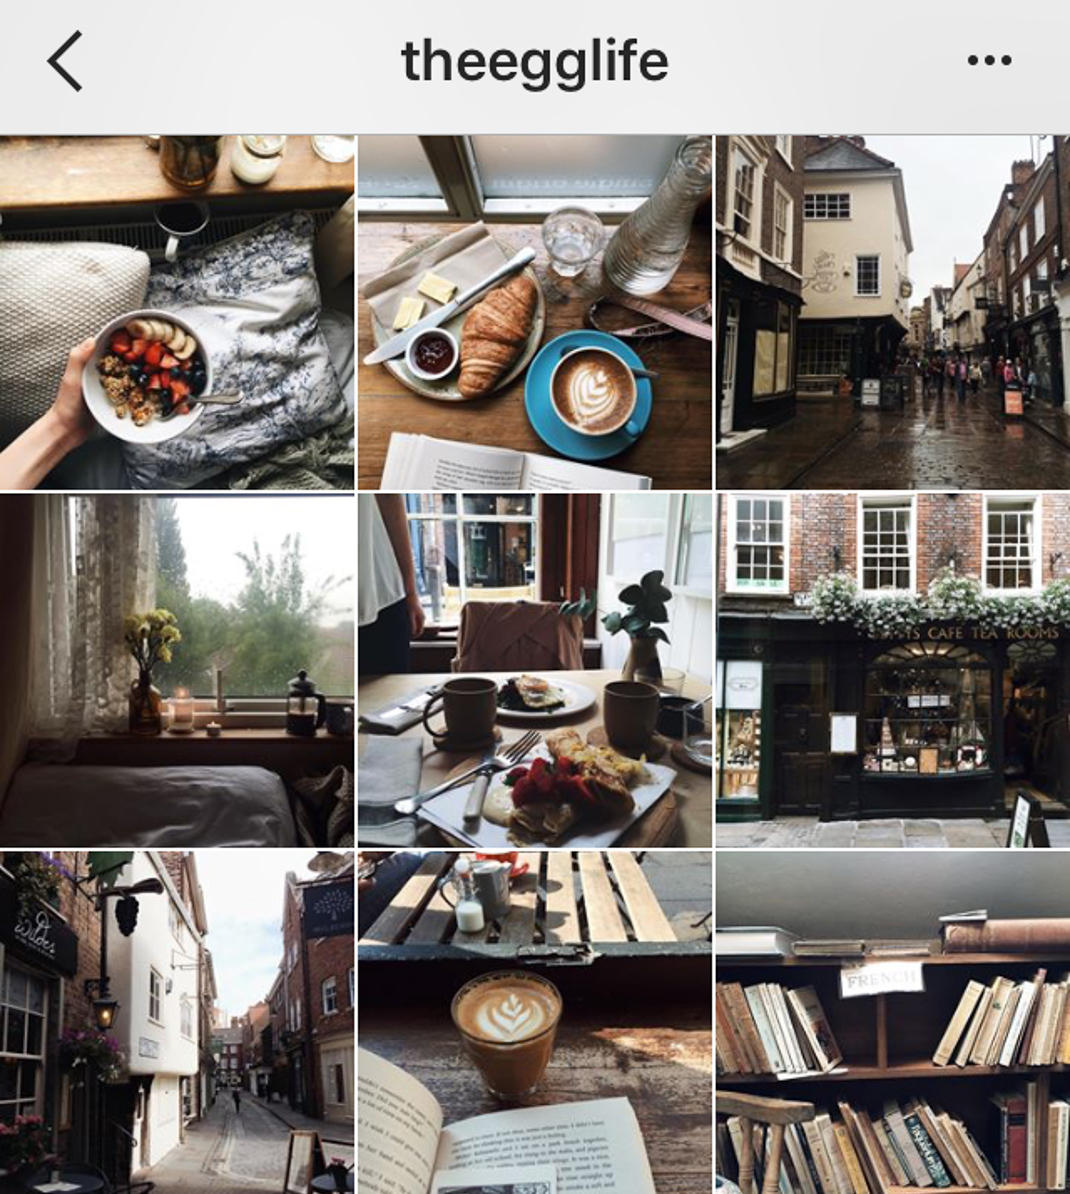 theegglife instagram